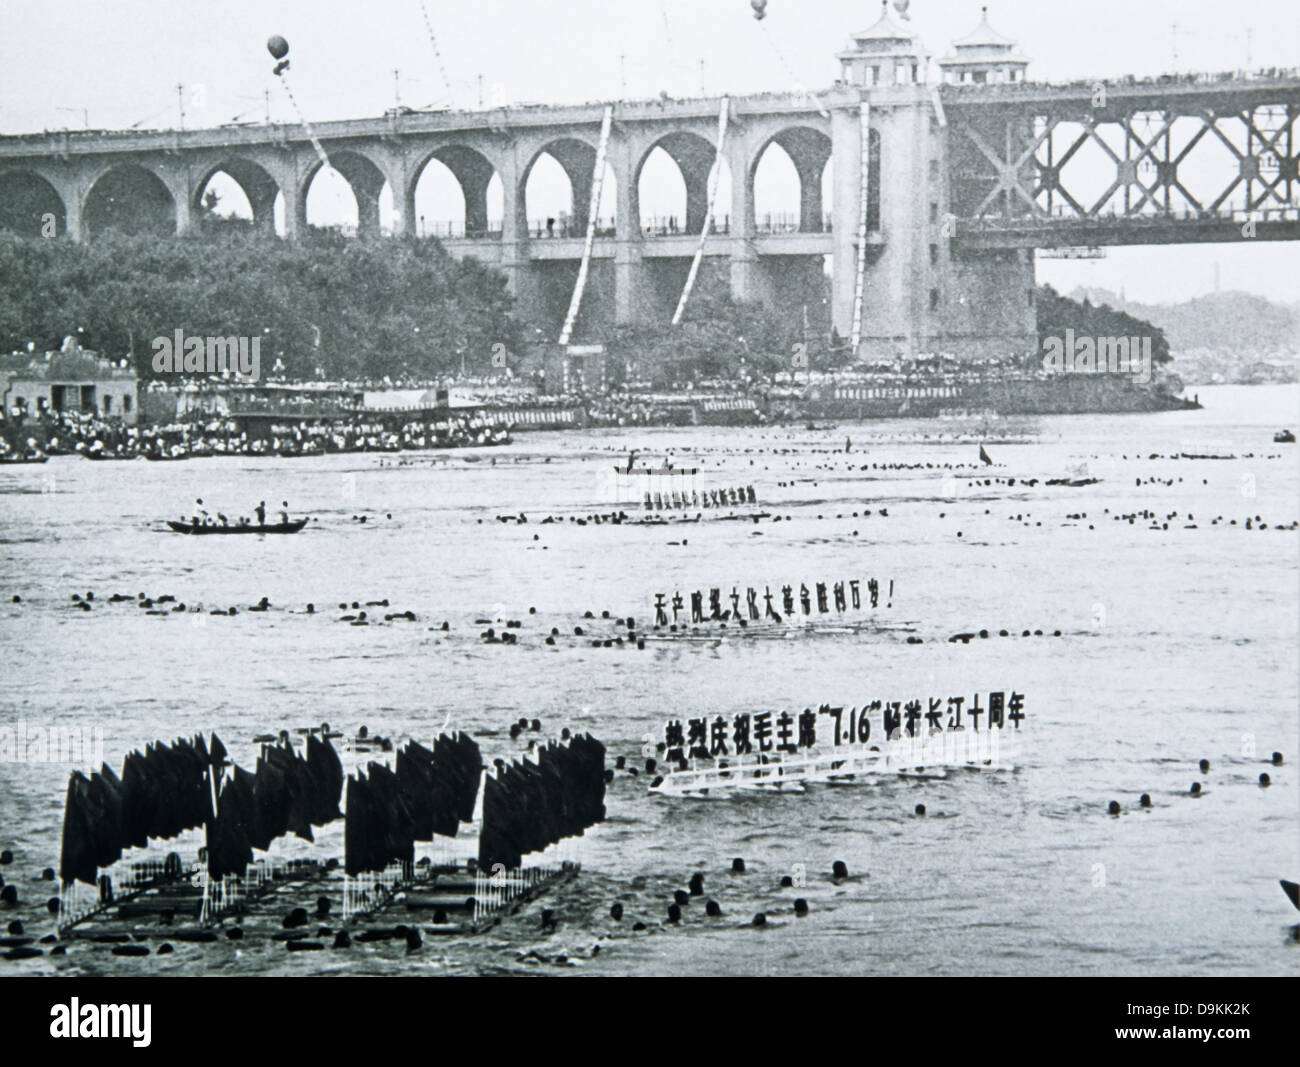 yangtse passage of the river by the army People's Liberation 1949 - Stock Image